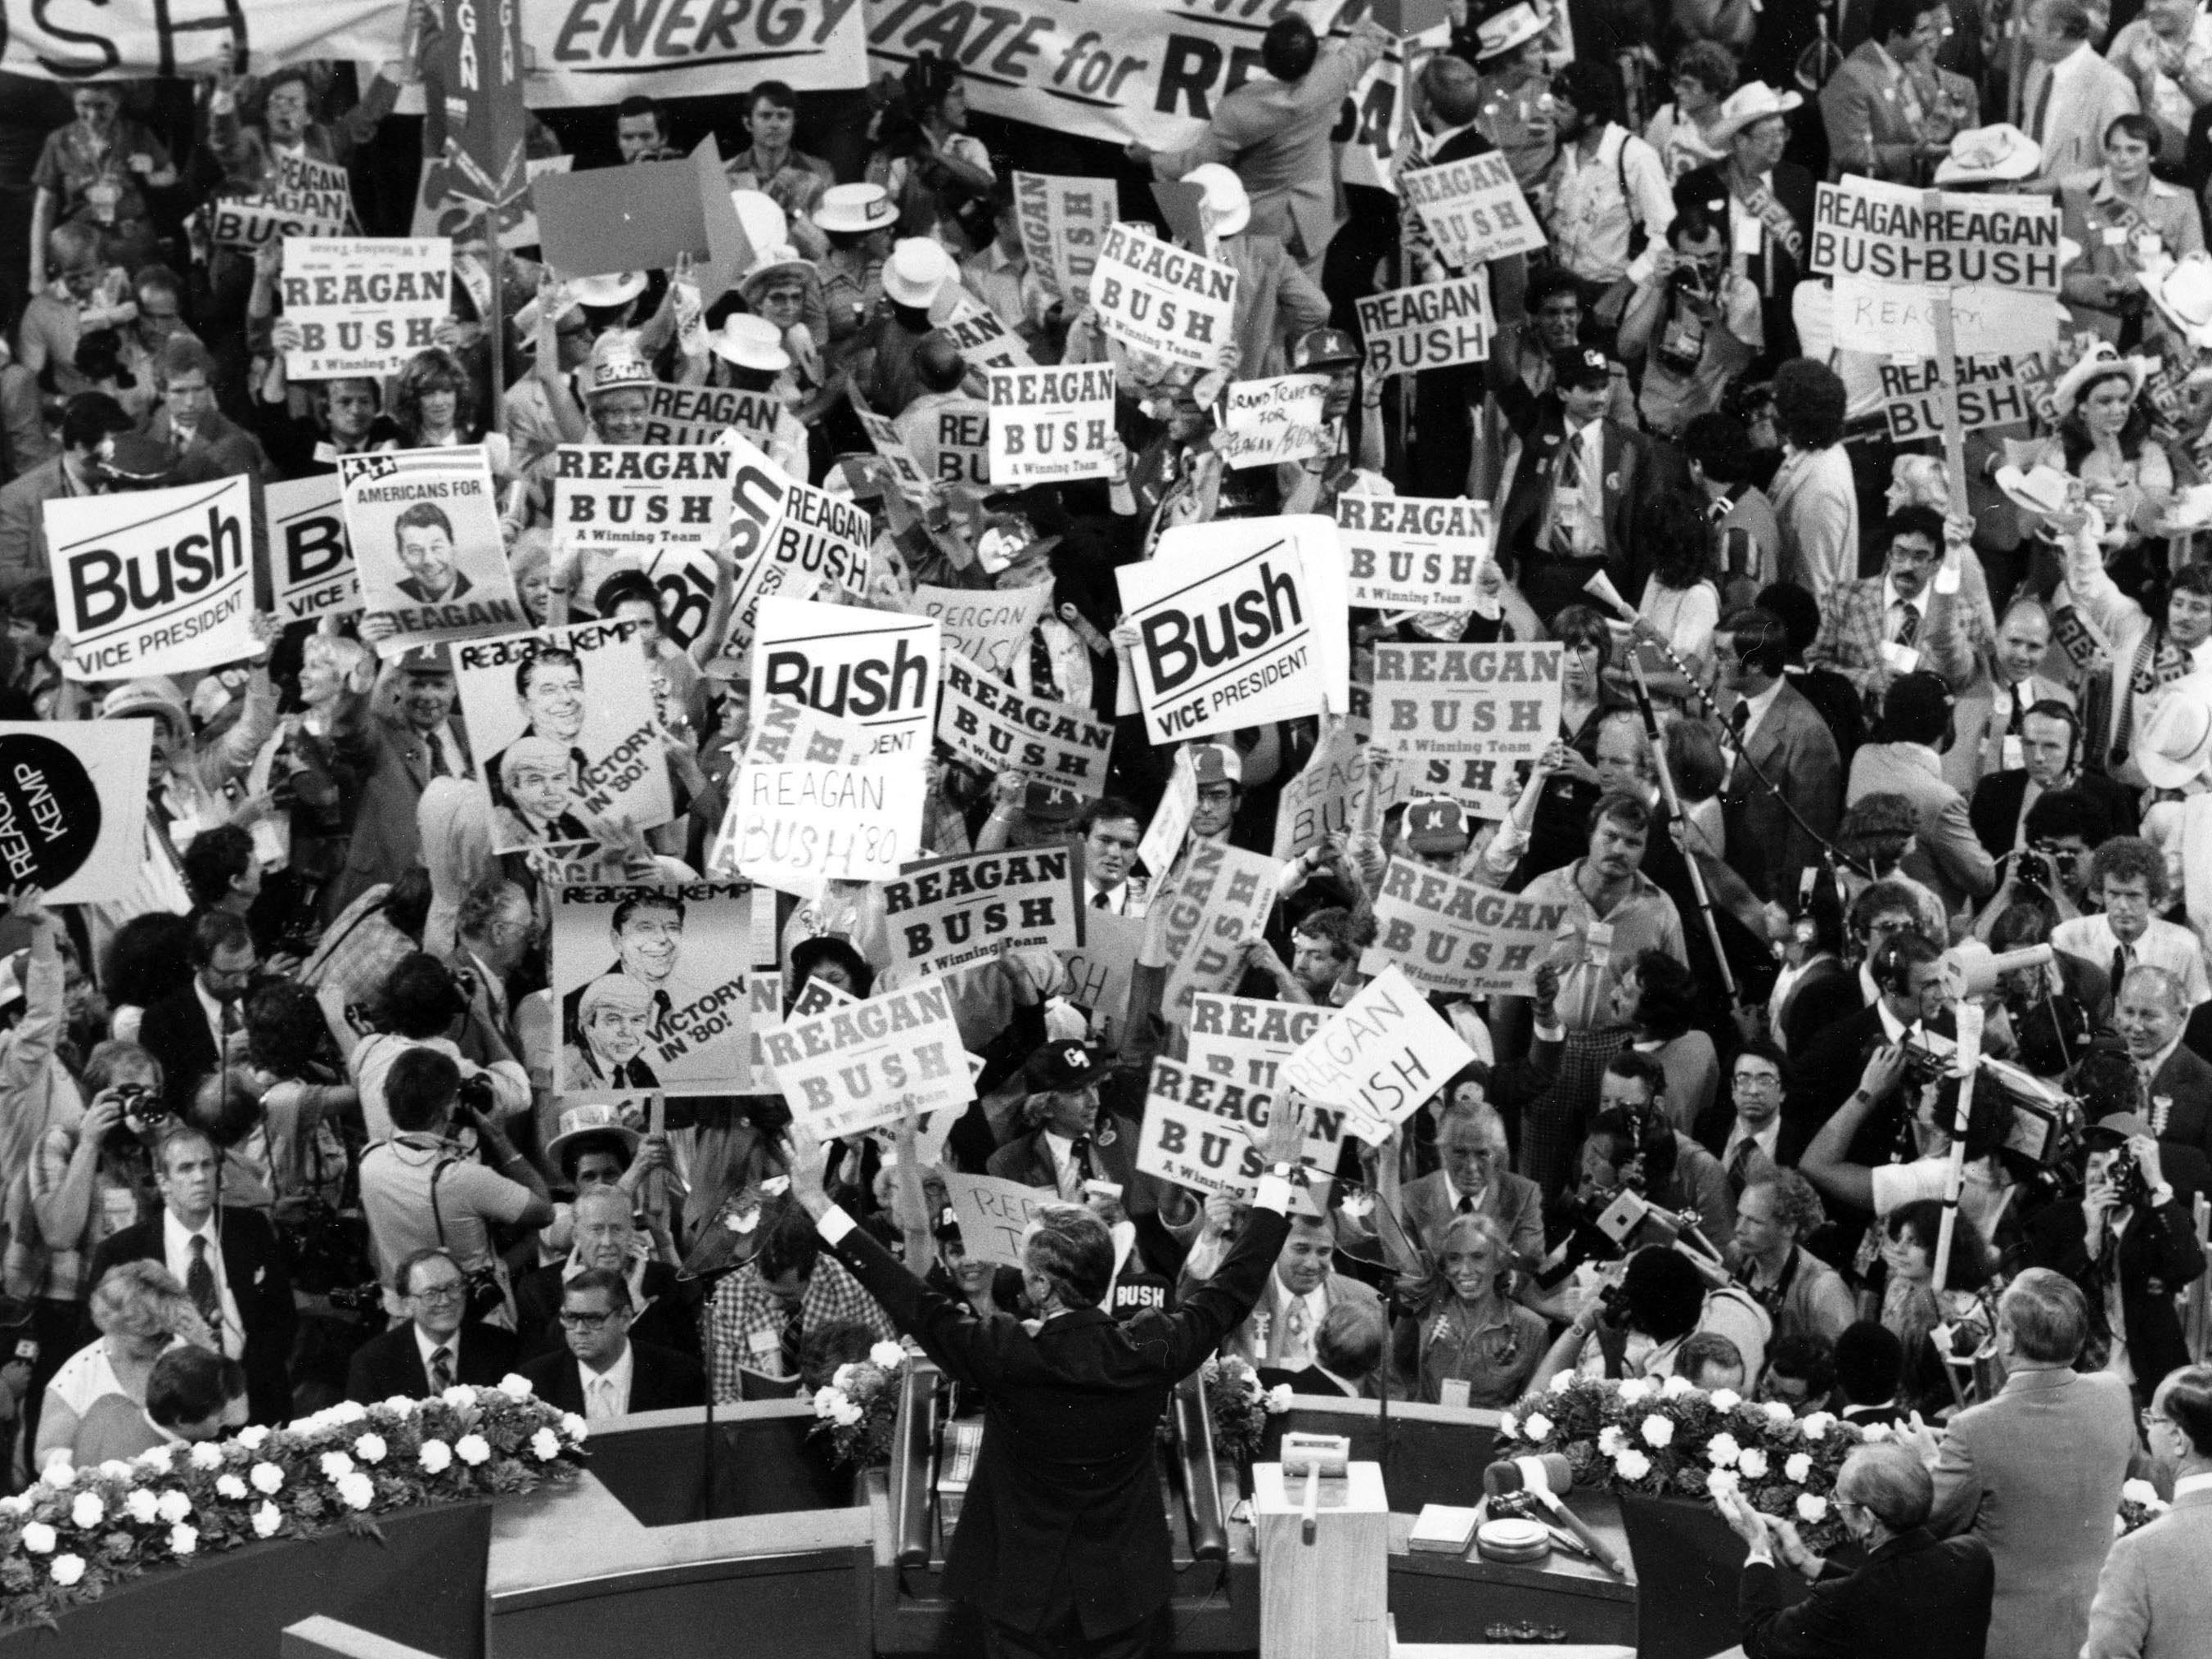 At the Republican Convention in Detroit on July 16, 1980, George H.W. Bush, center foreground, acknowledges the crowd before speaking to the delegates.